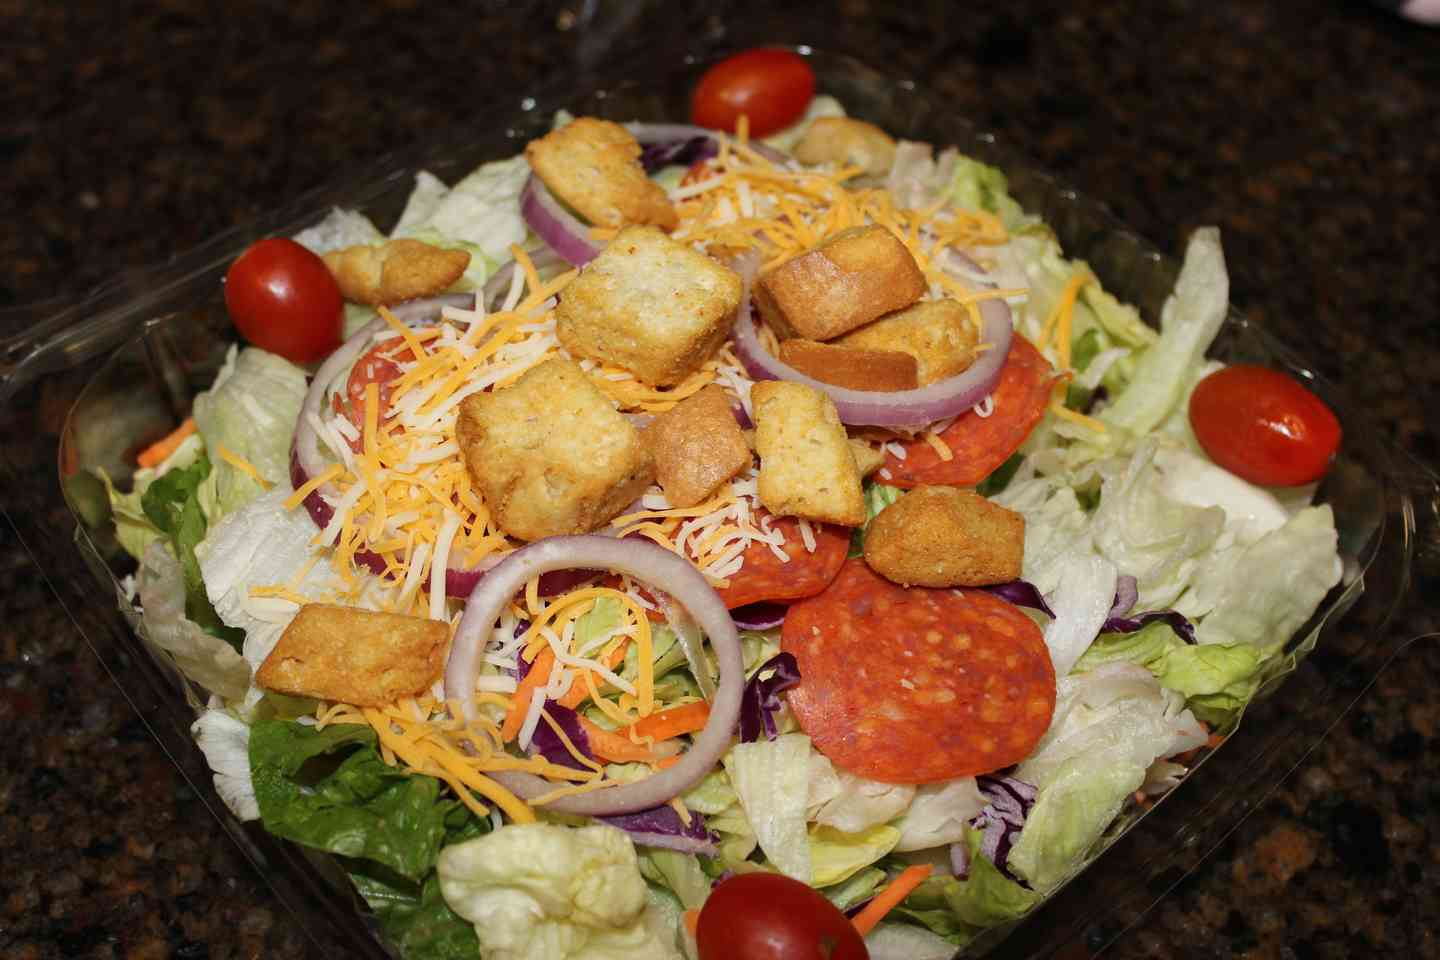 LARGE CHEF SALAD